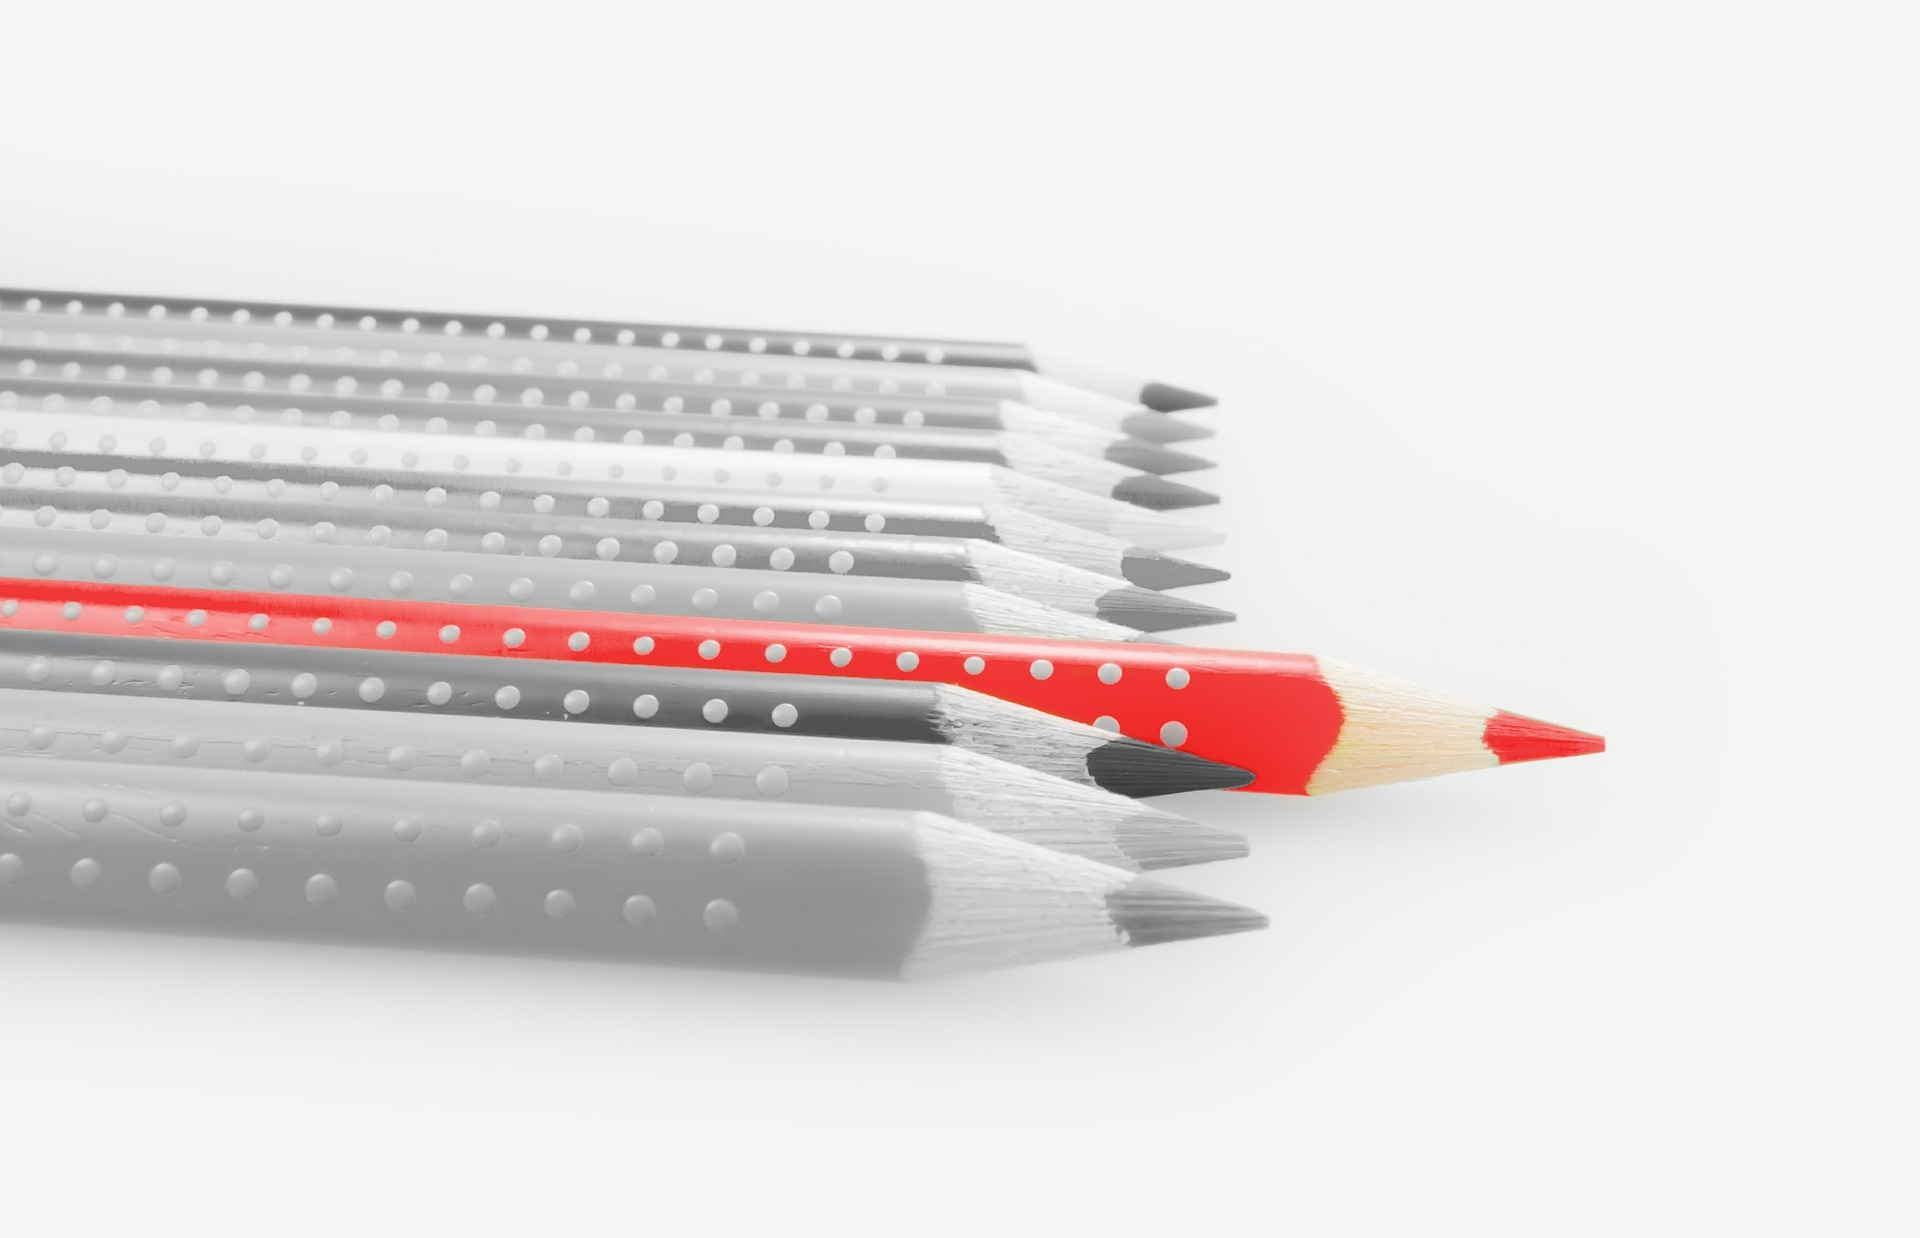 In a black and white image of pencils, with one unique and creative one that stands out from the rest.